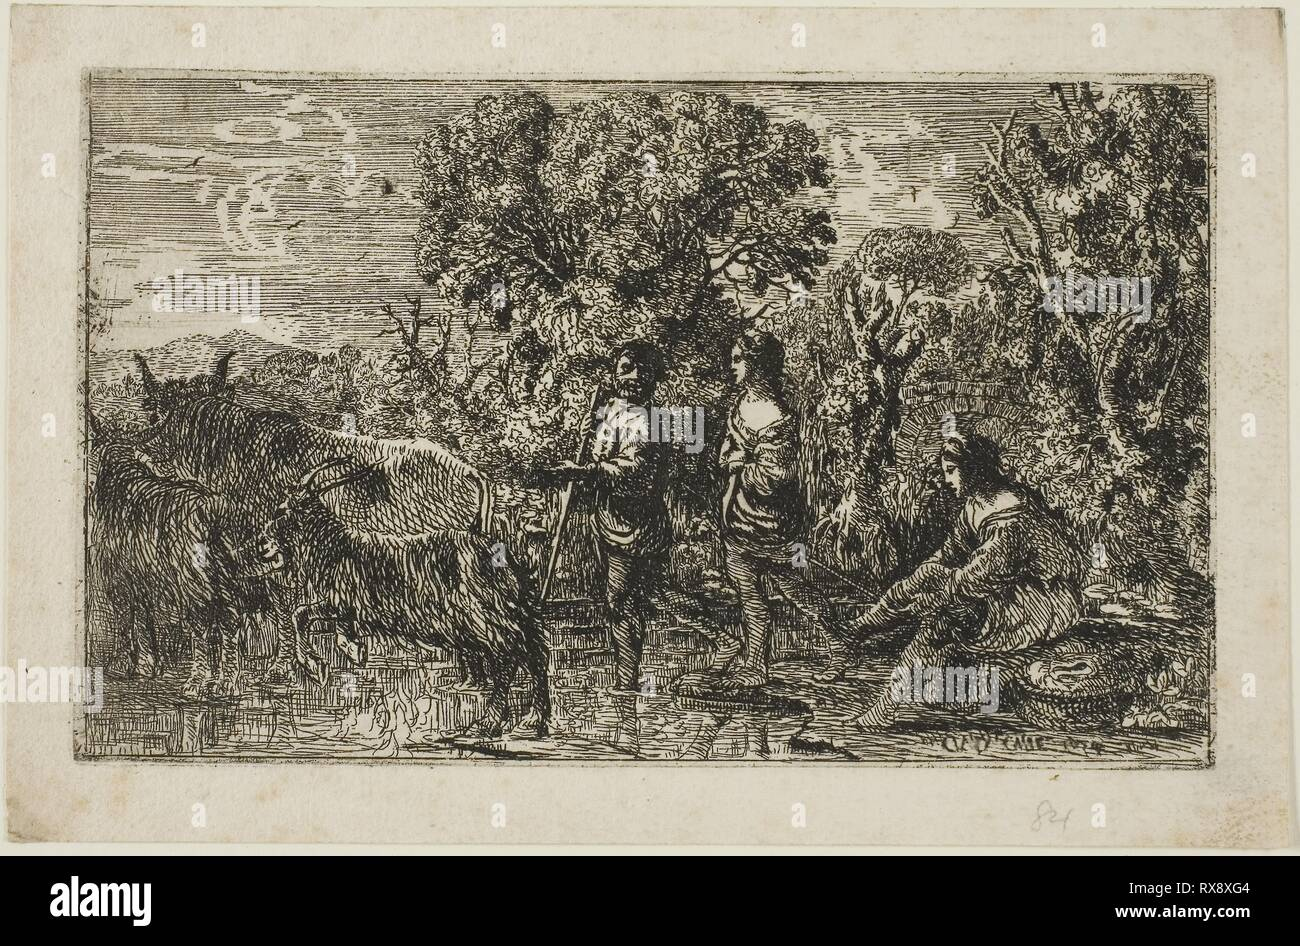 The Ford. Claude Lorrain; French, 1600-1682. Date: 1634. Dimensions: 105 × 172 mm (image/plate); 126 × 194 mm (sheet). Etching on ivory laid paper. Origin: France. Museum: The Chicago Art Institute. - Stock Image